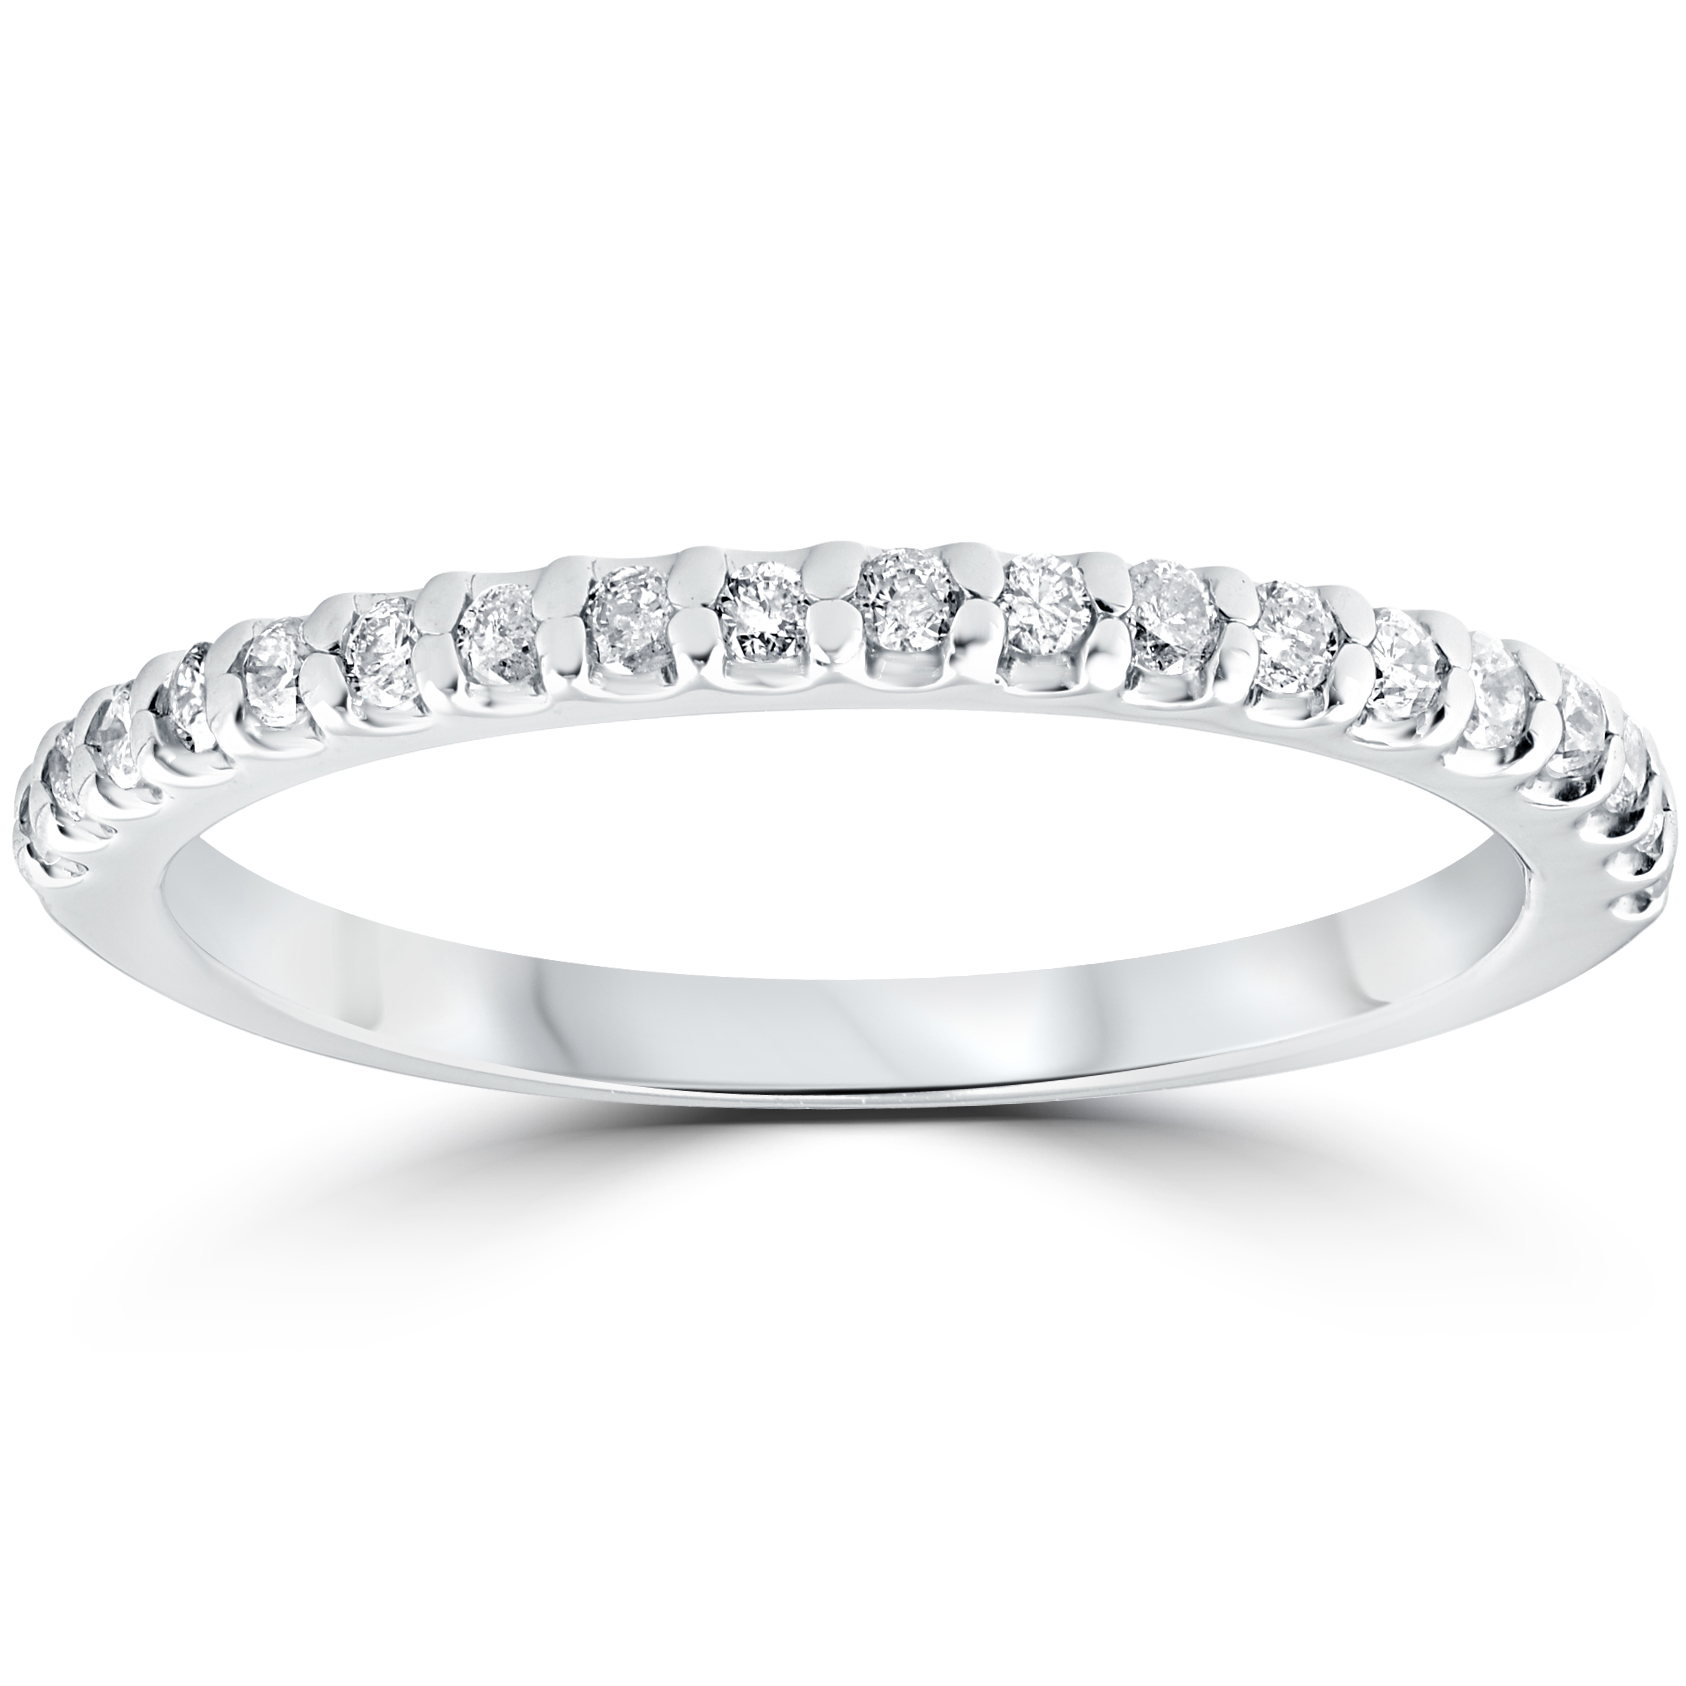 1/5 cttw Diamond Stackable Womens Wedding Ring 10k White ...